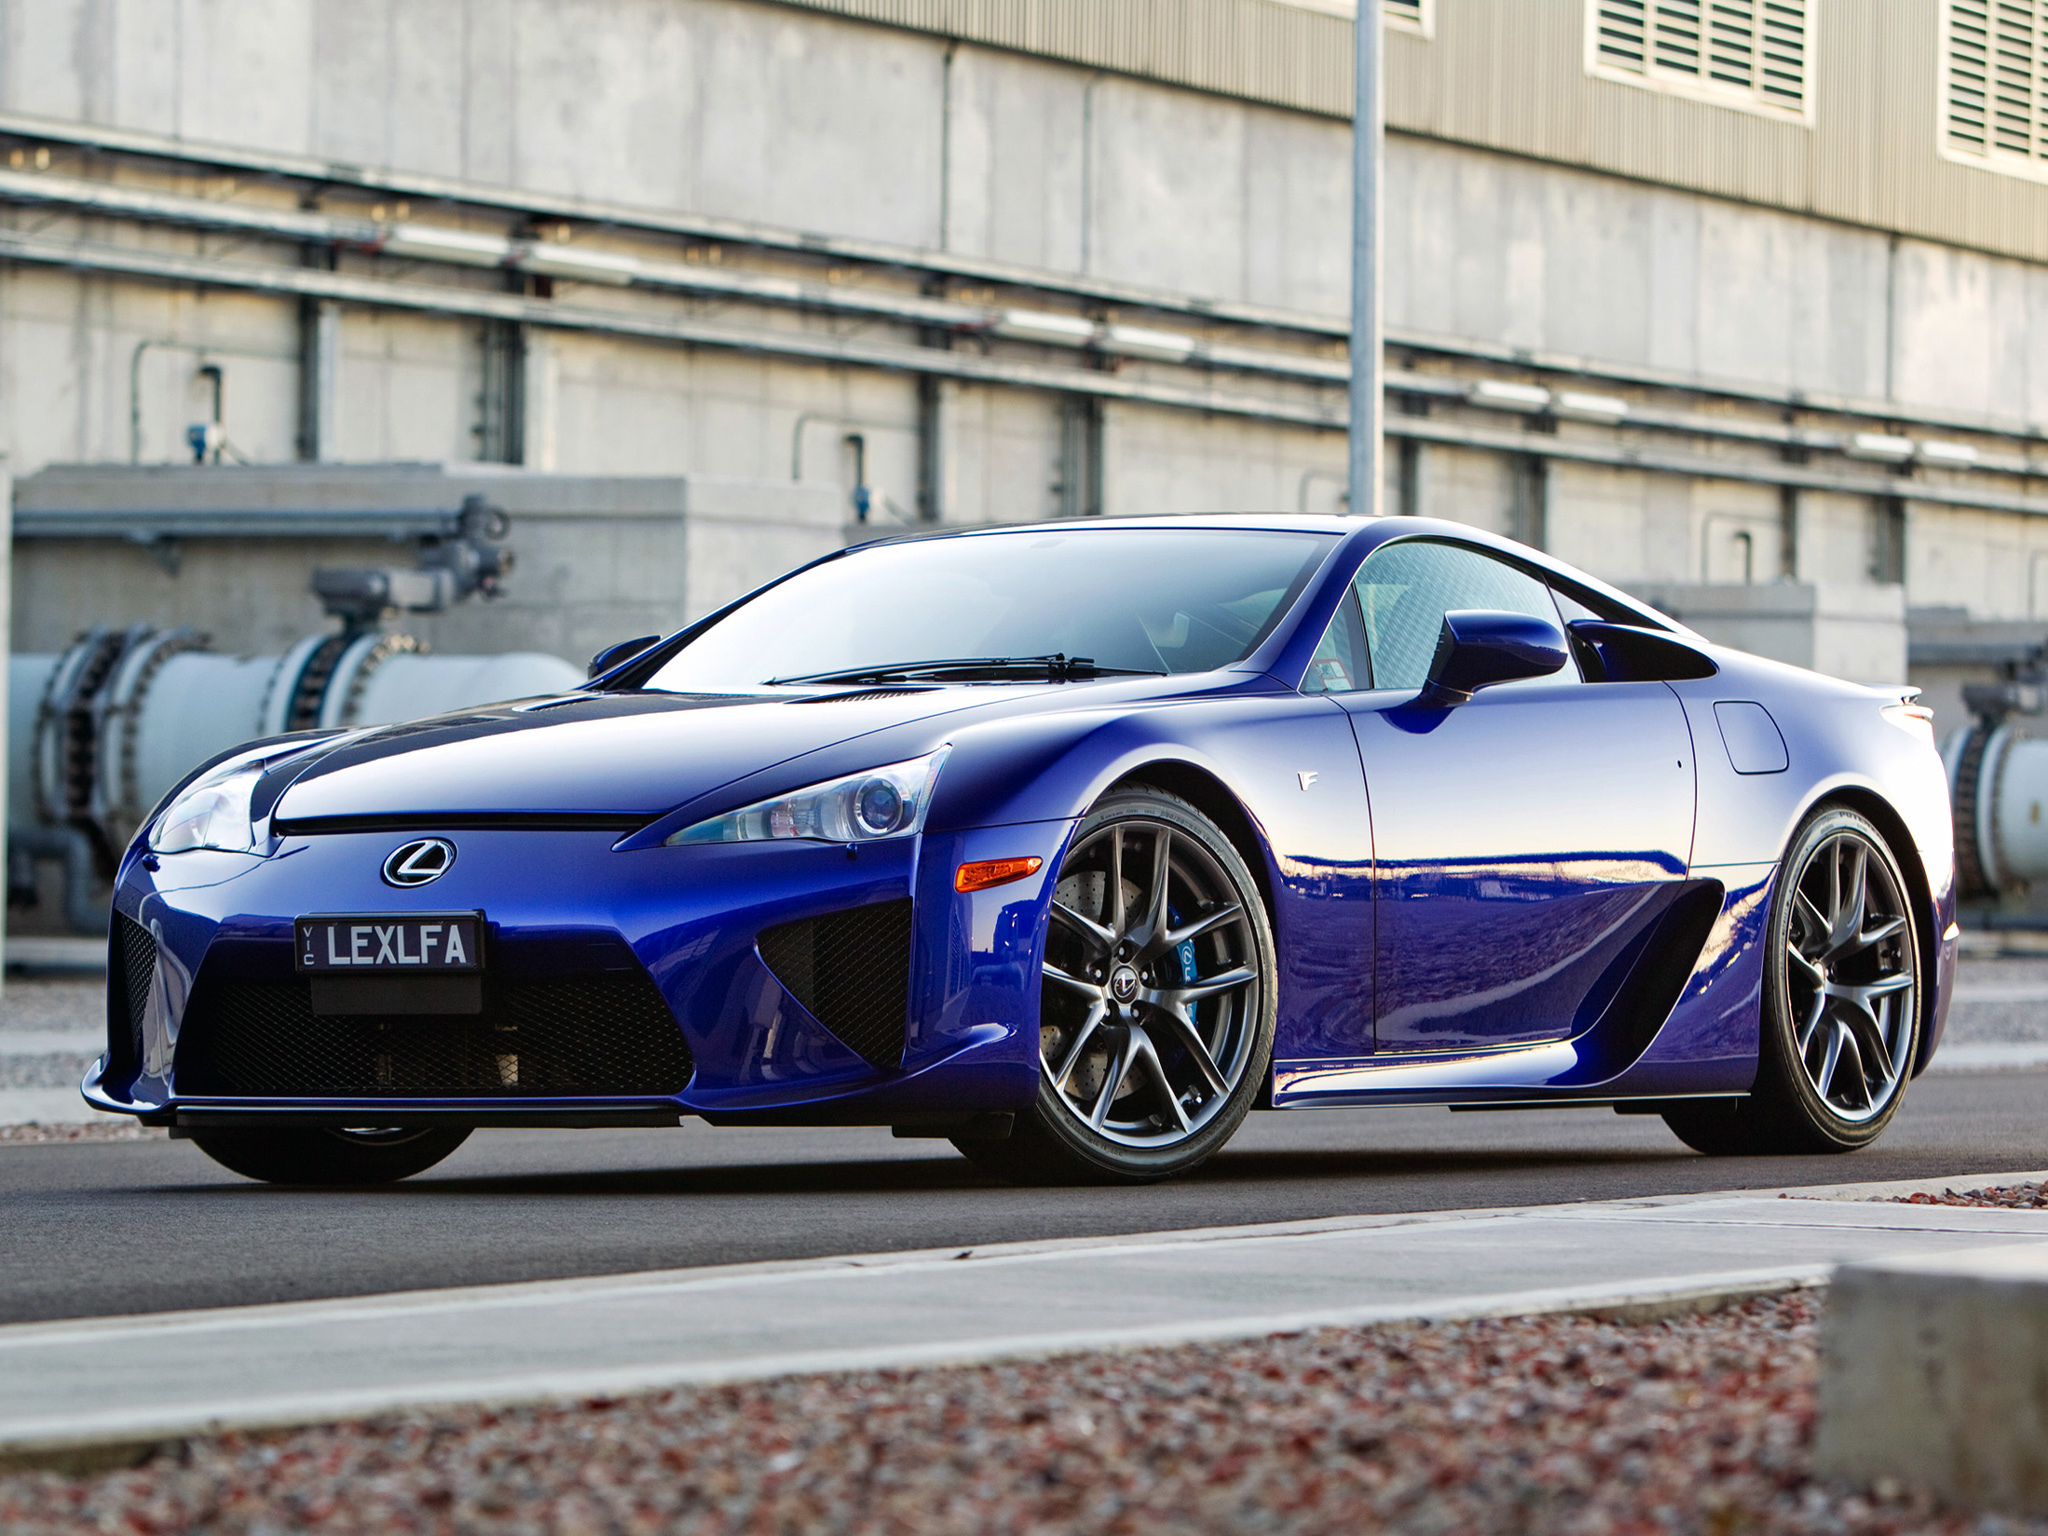 wallpapers lexus lfa - photo #31